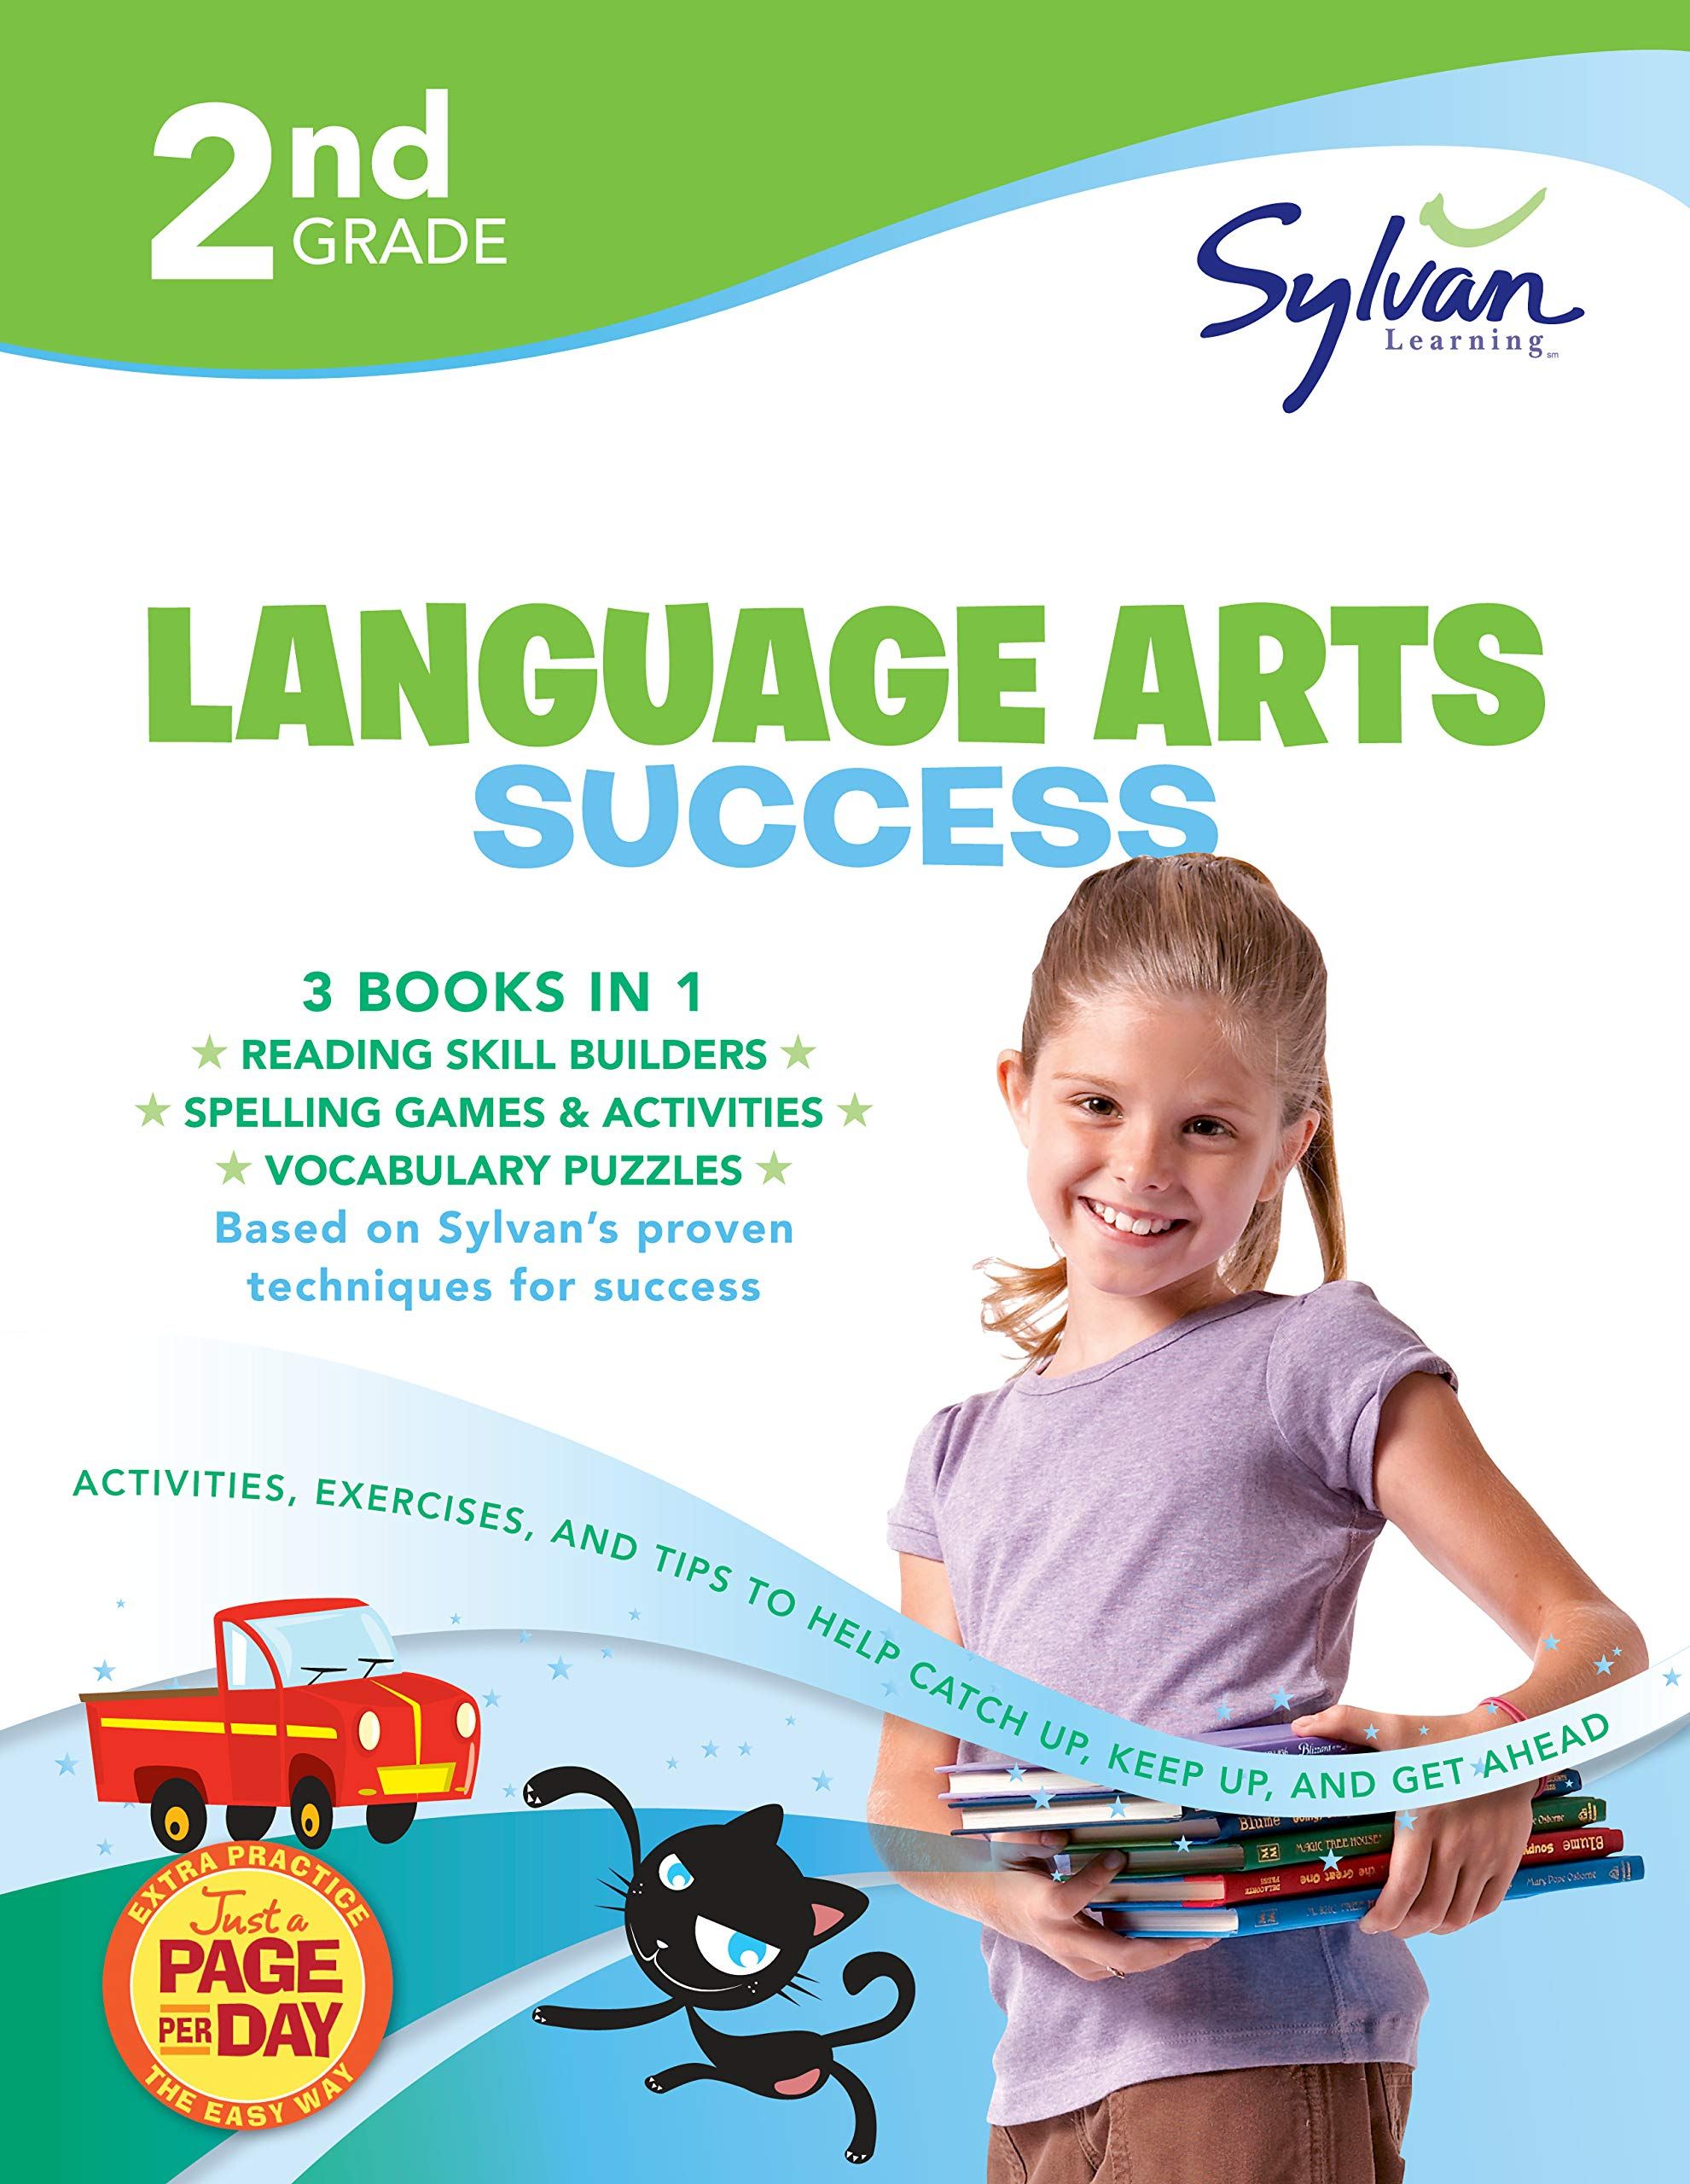 2nd Grade Language Arts Success: Activities, Exercises, and Tips to Help Catch Up, Keep Up, and Get Ahead (Sylvan Language Arts Super Workbooks) by Sylvan Learning Publishing